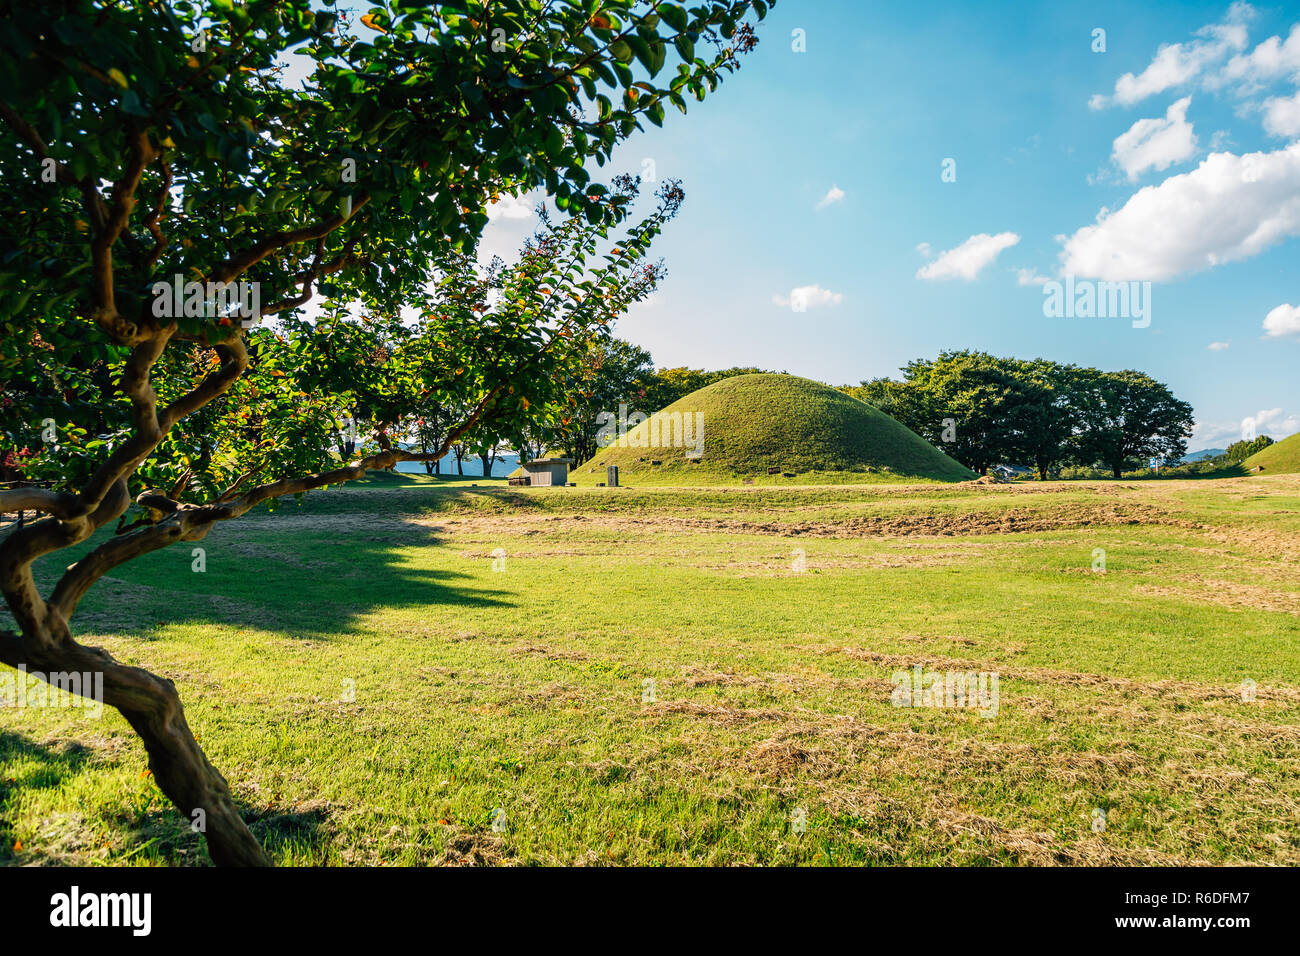 Gyeongju Gyerim and royal tomb, ancient ruins in Gyeongju, Korea Stock Photo